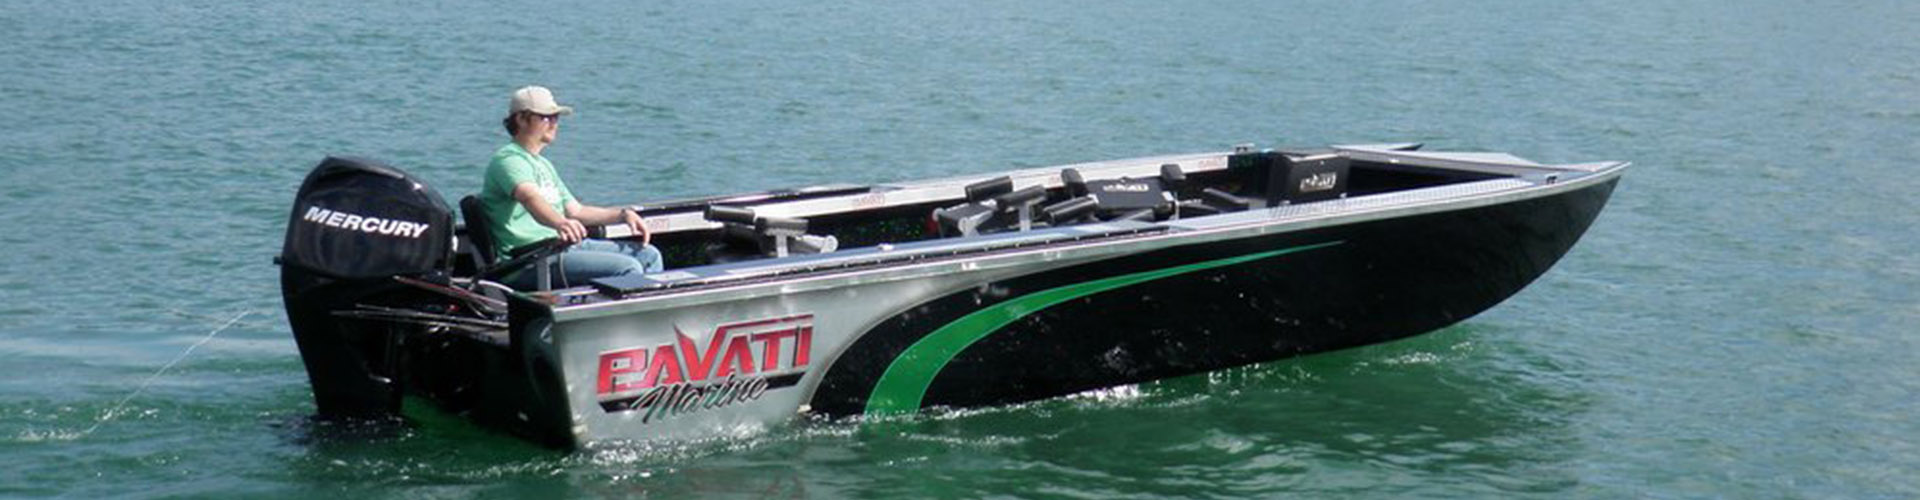 Wildcat Header Drift Boat